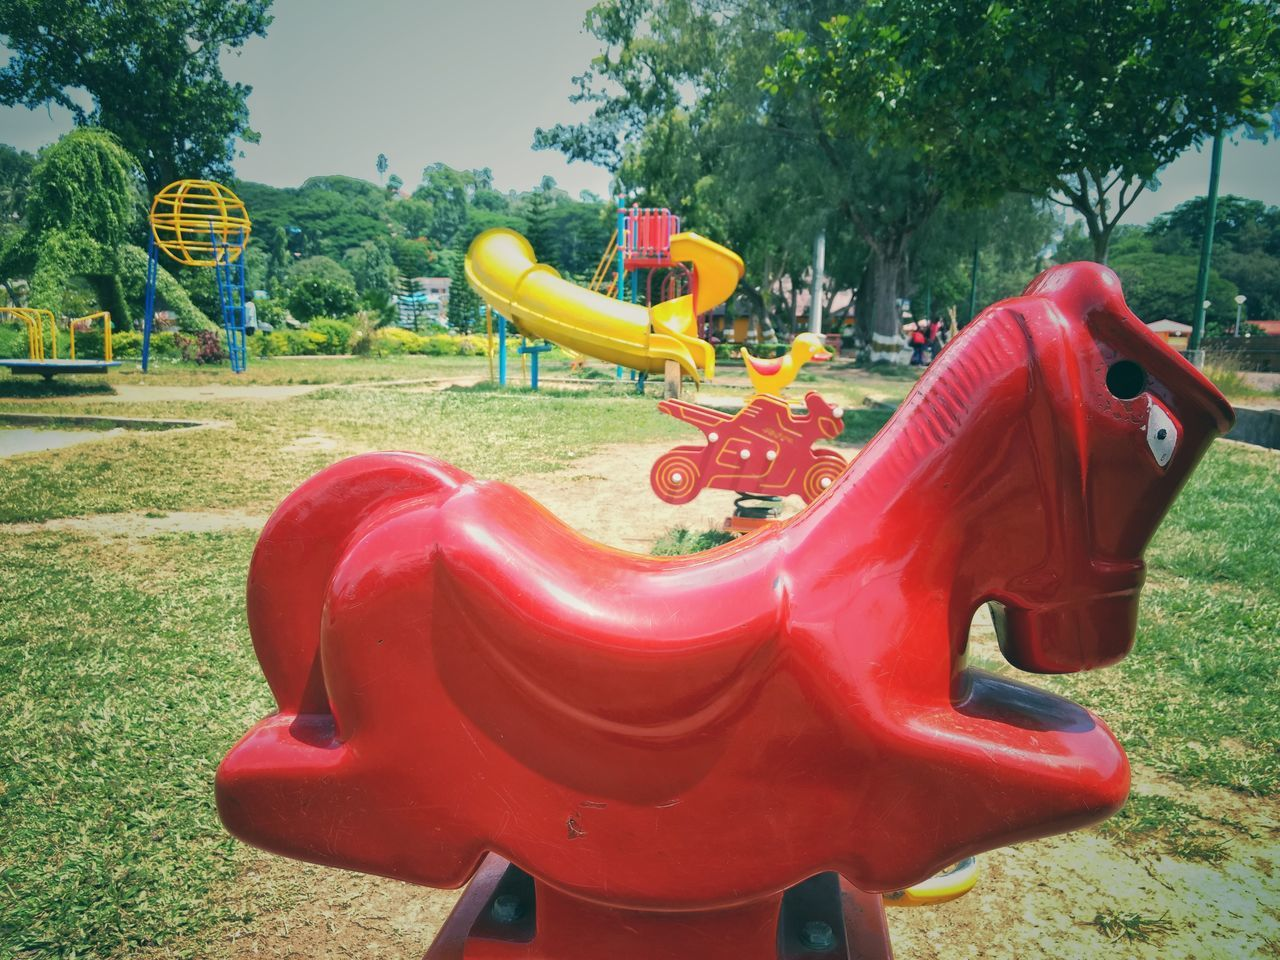 playground, outdoor play equipment, childhood, tree, park - man made space, red, slide, absence, empty, day, water park, amusement park, no people, outdoors, fun, water slide, merry-go-round, carousel, nature